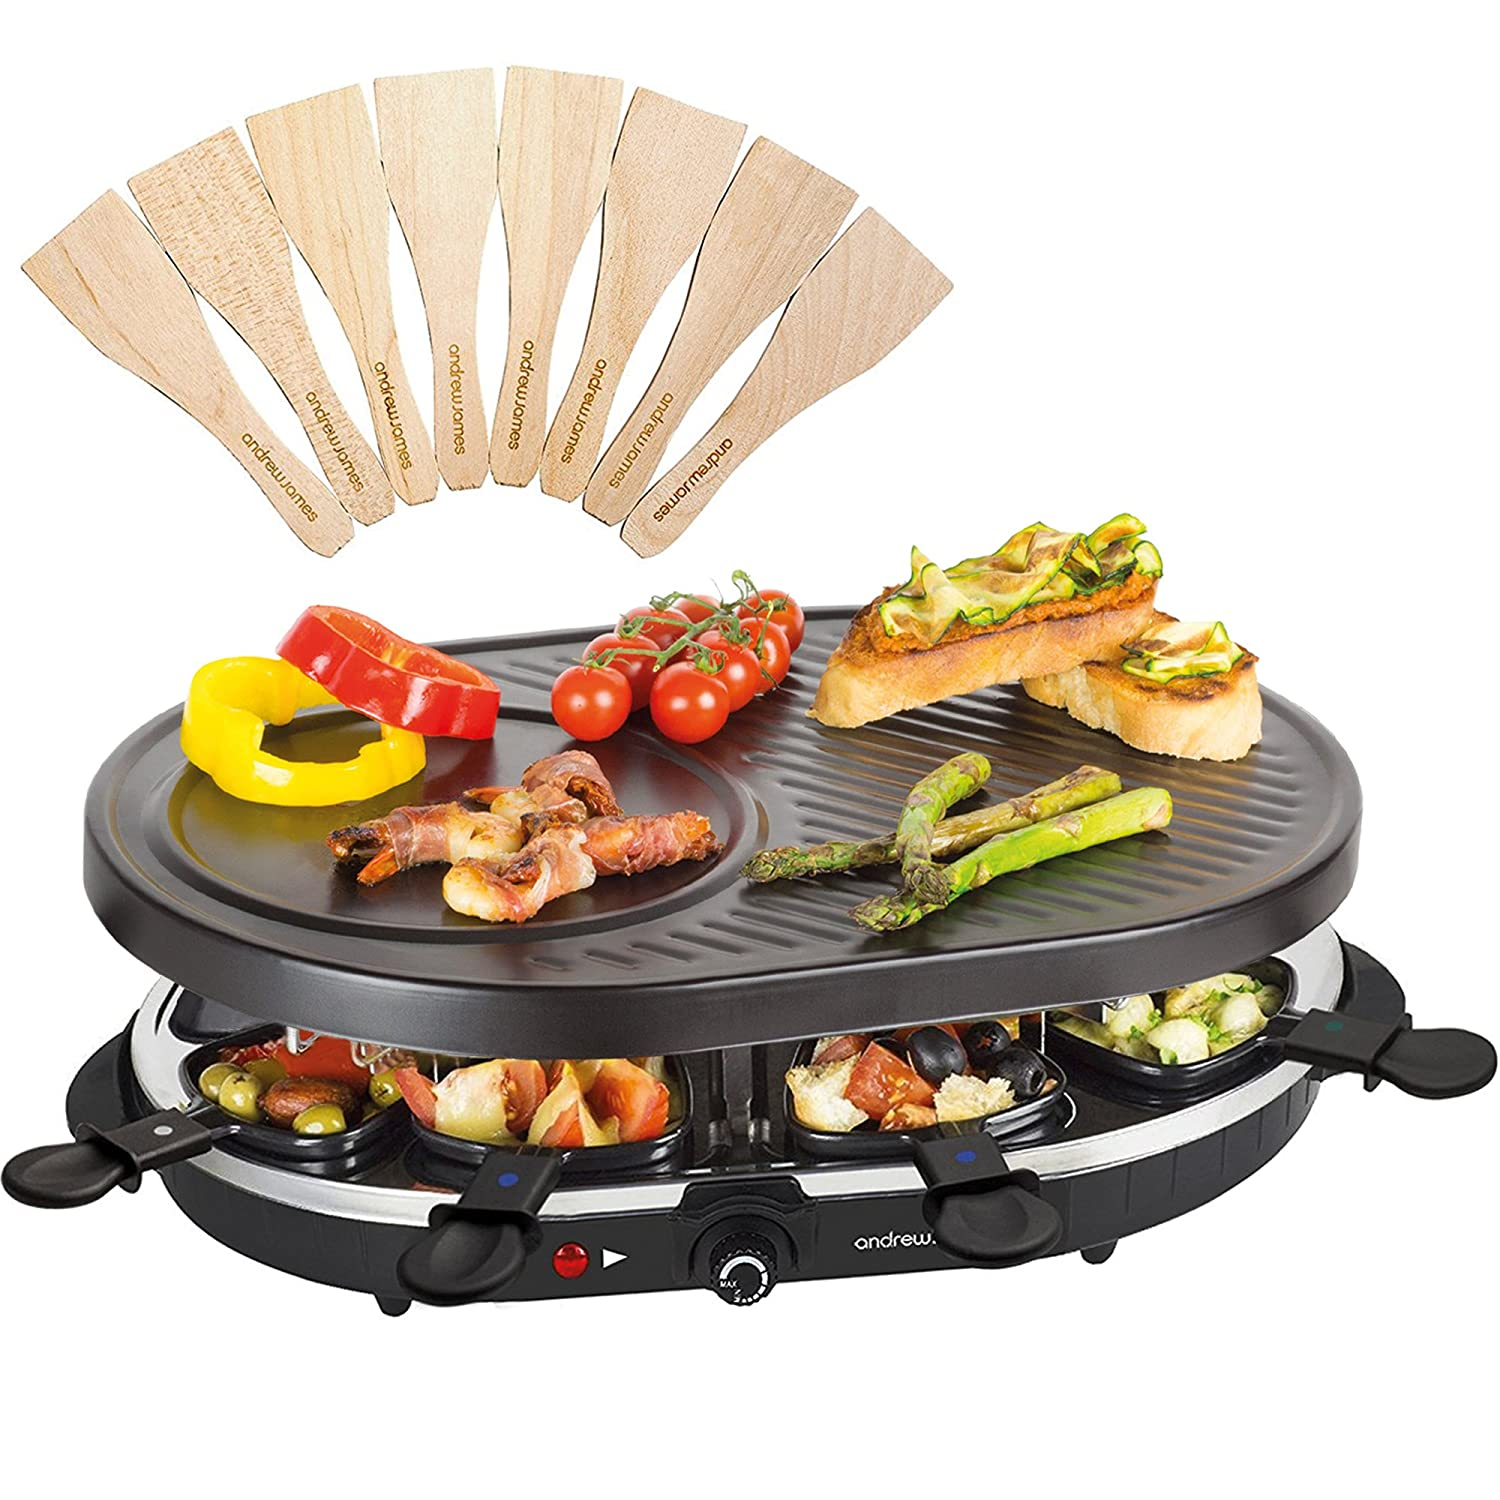 a58b0372338b8 Andrew James Raclette Grill